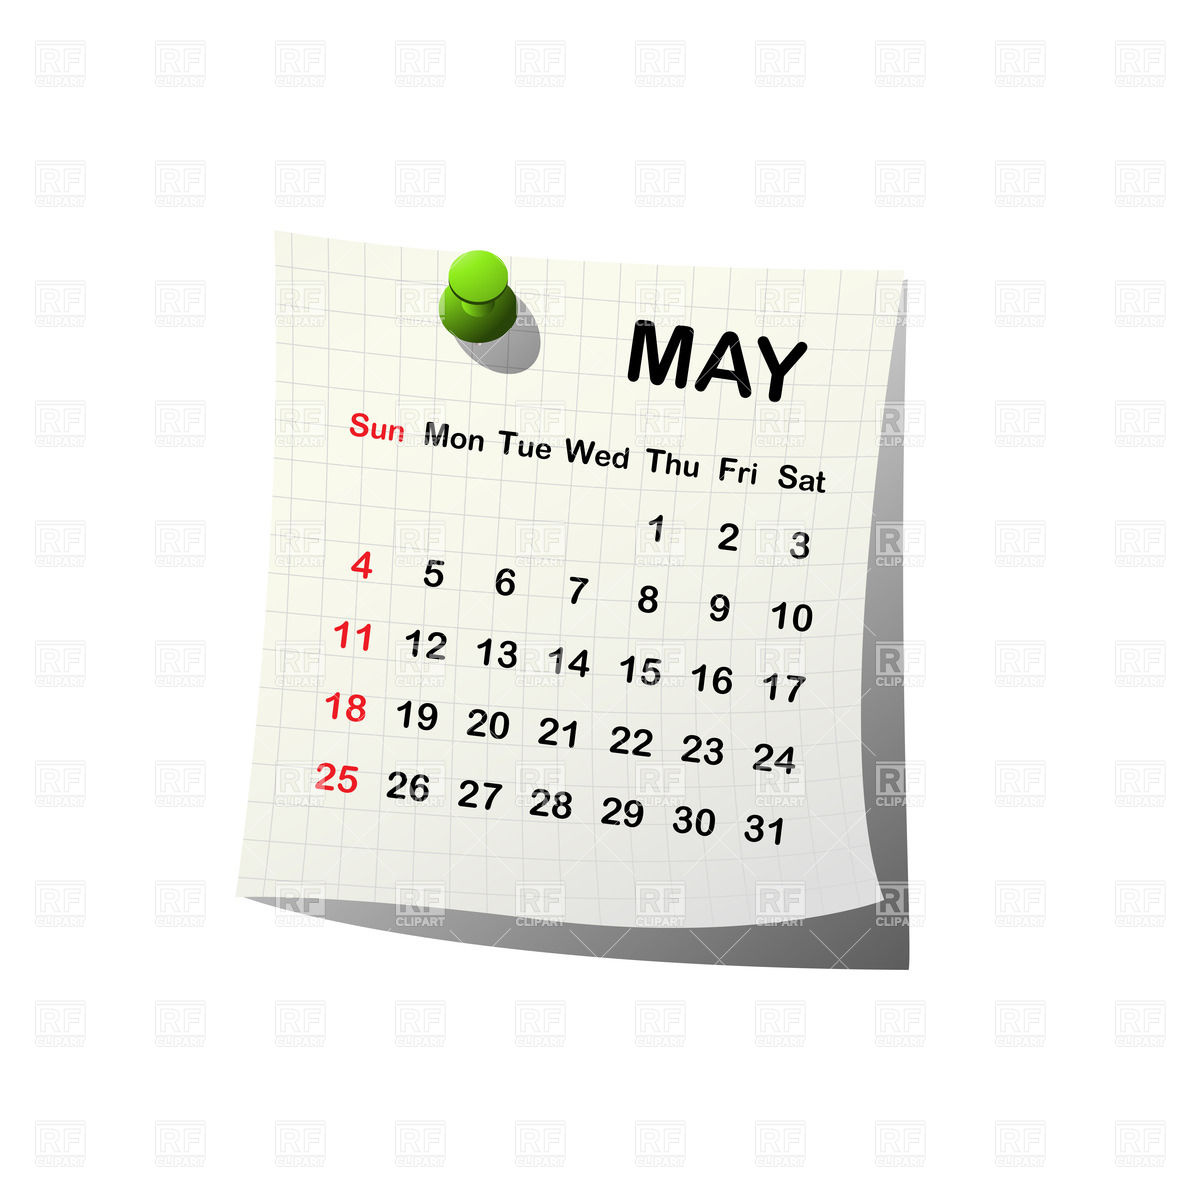 Calendar may 28 clipart picture freeuse download May Calendar Clipart - Clipart Kid picture freeuse download